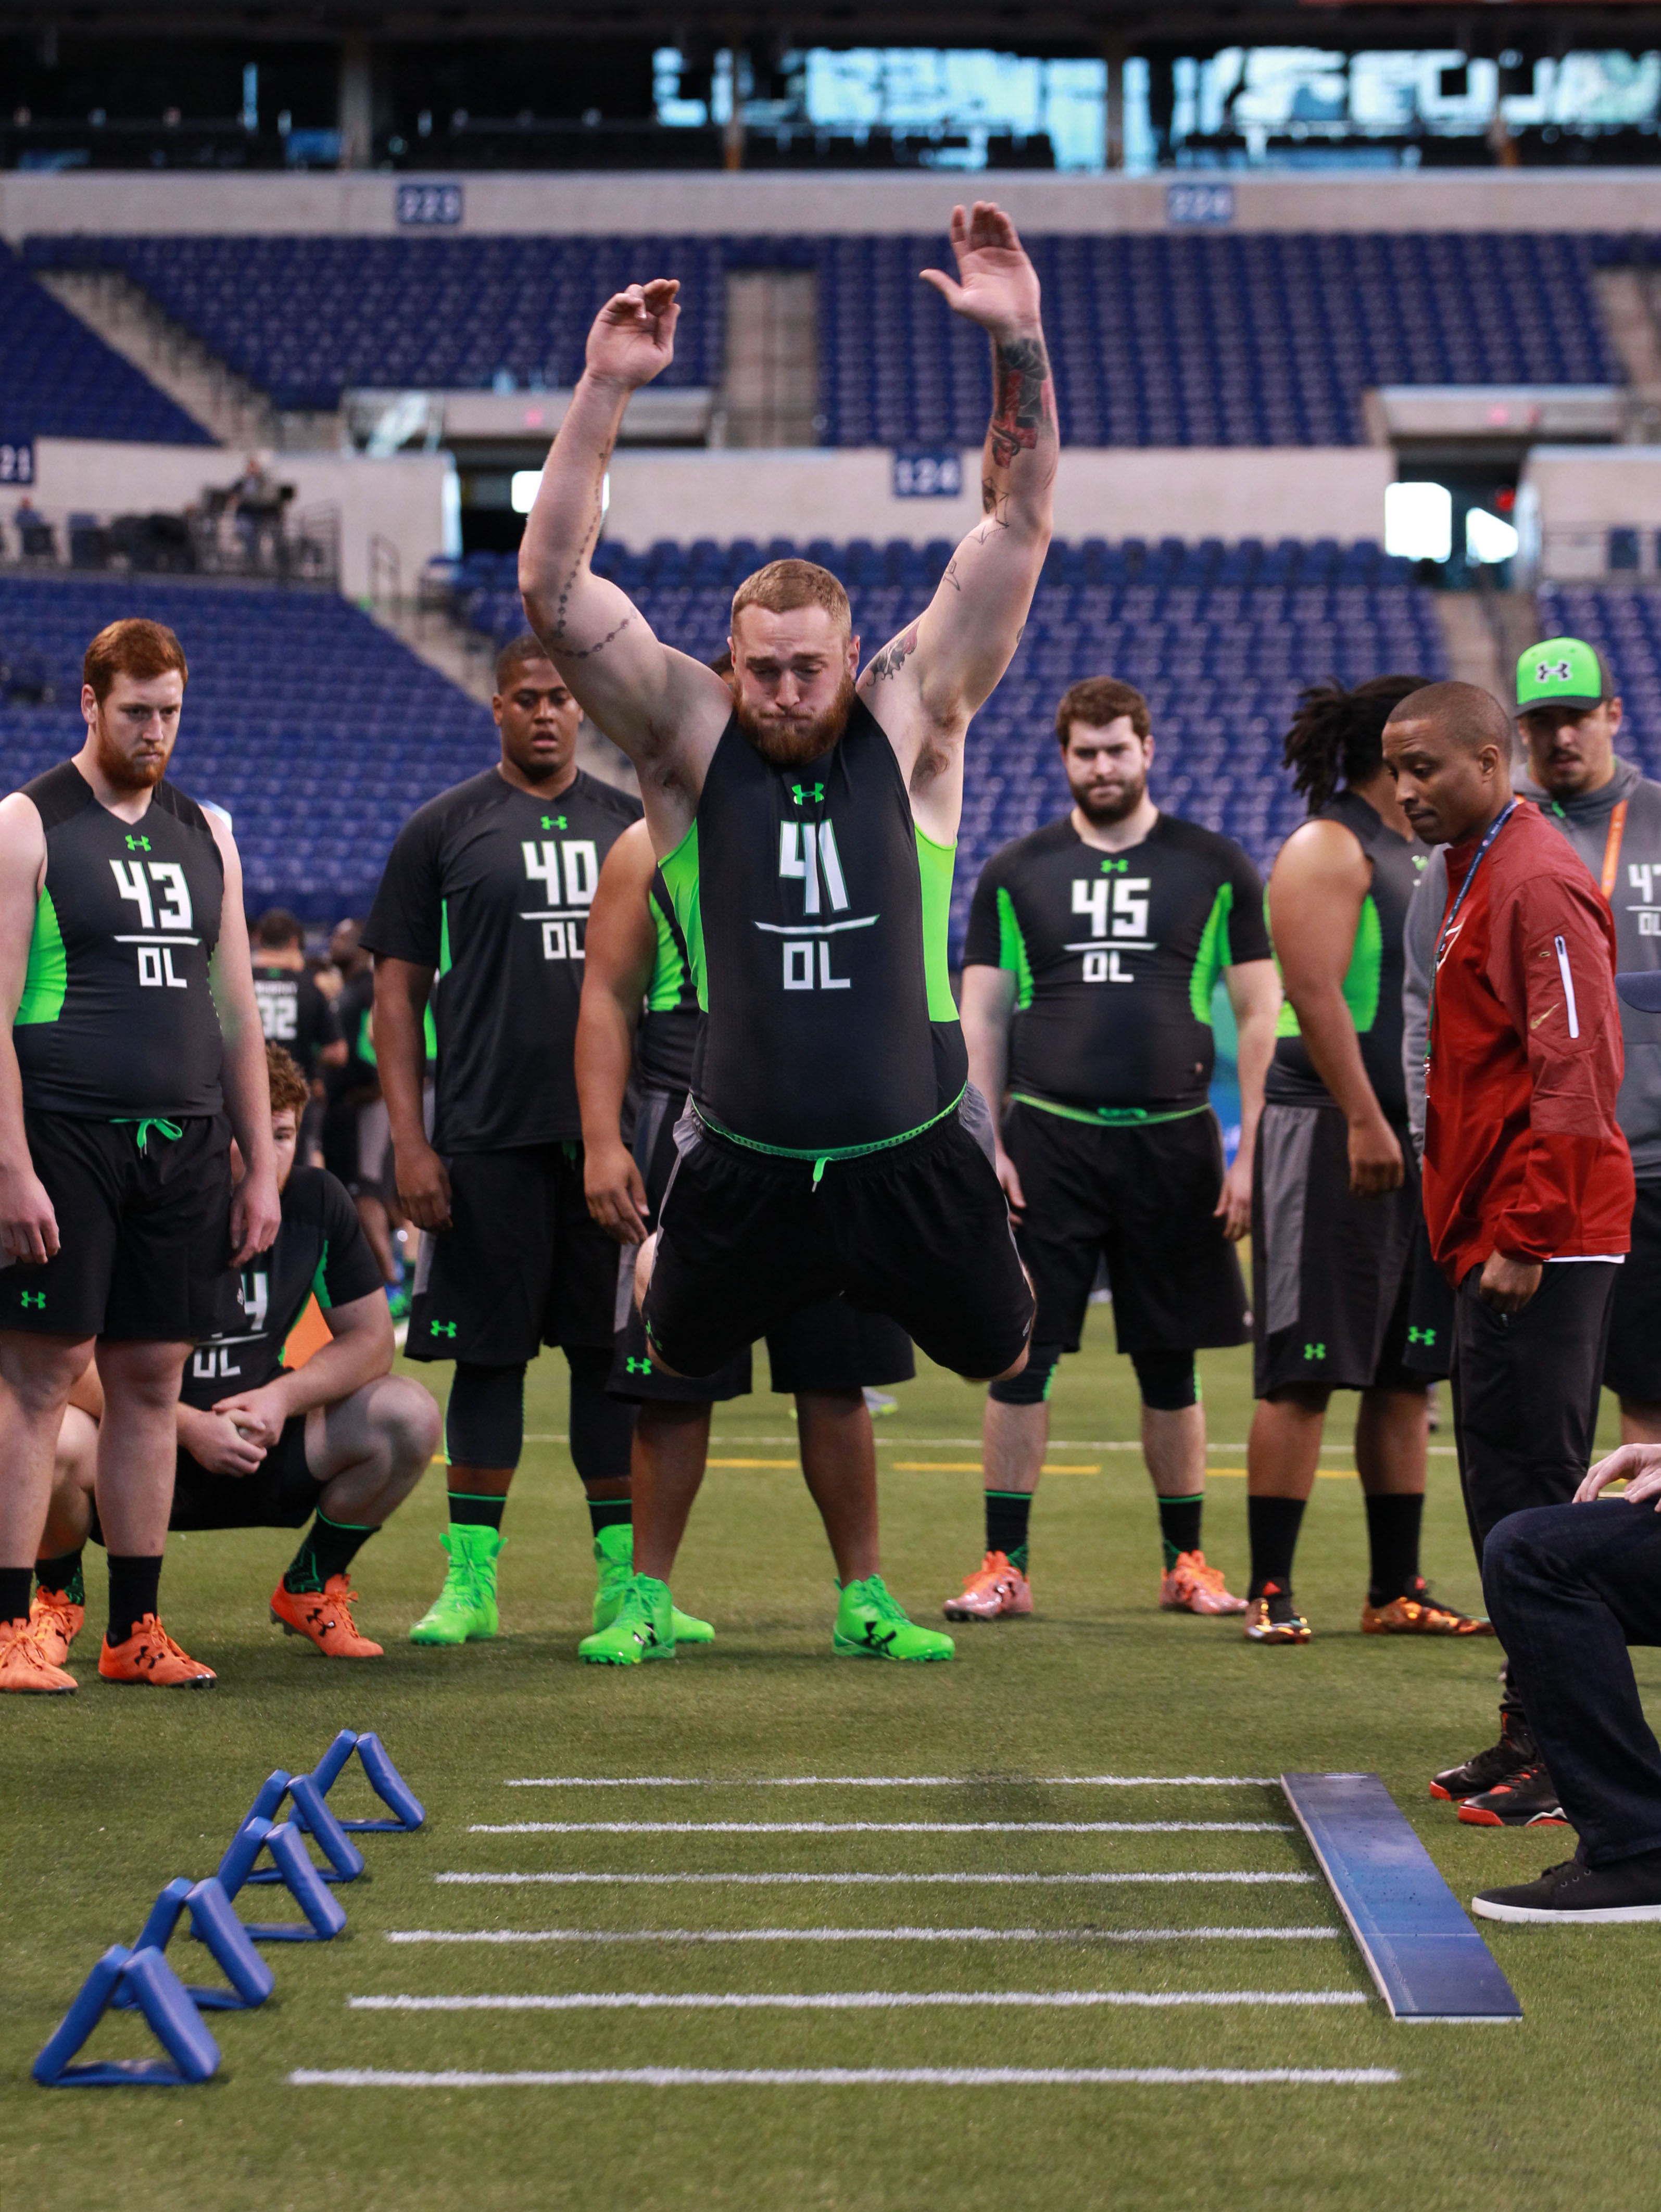 Jason Spriggs during the broad jump at the Combine